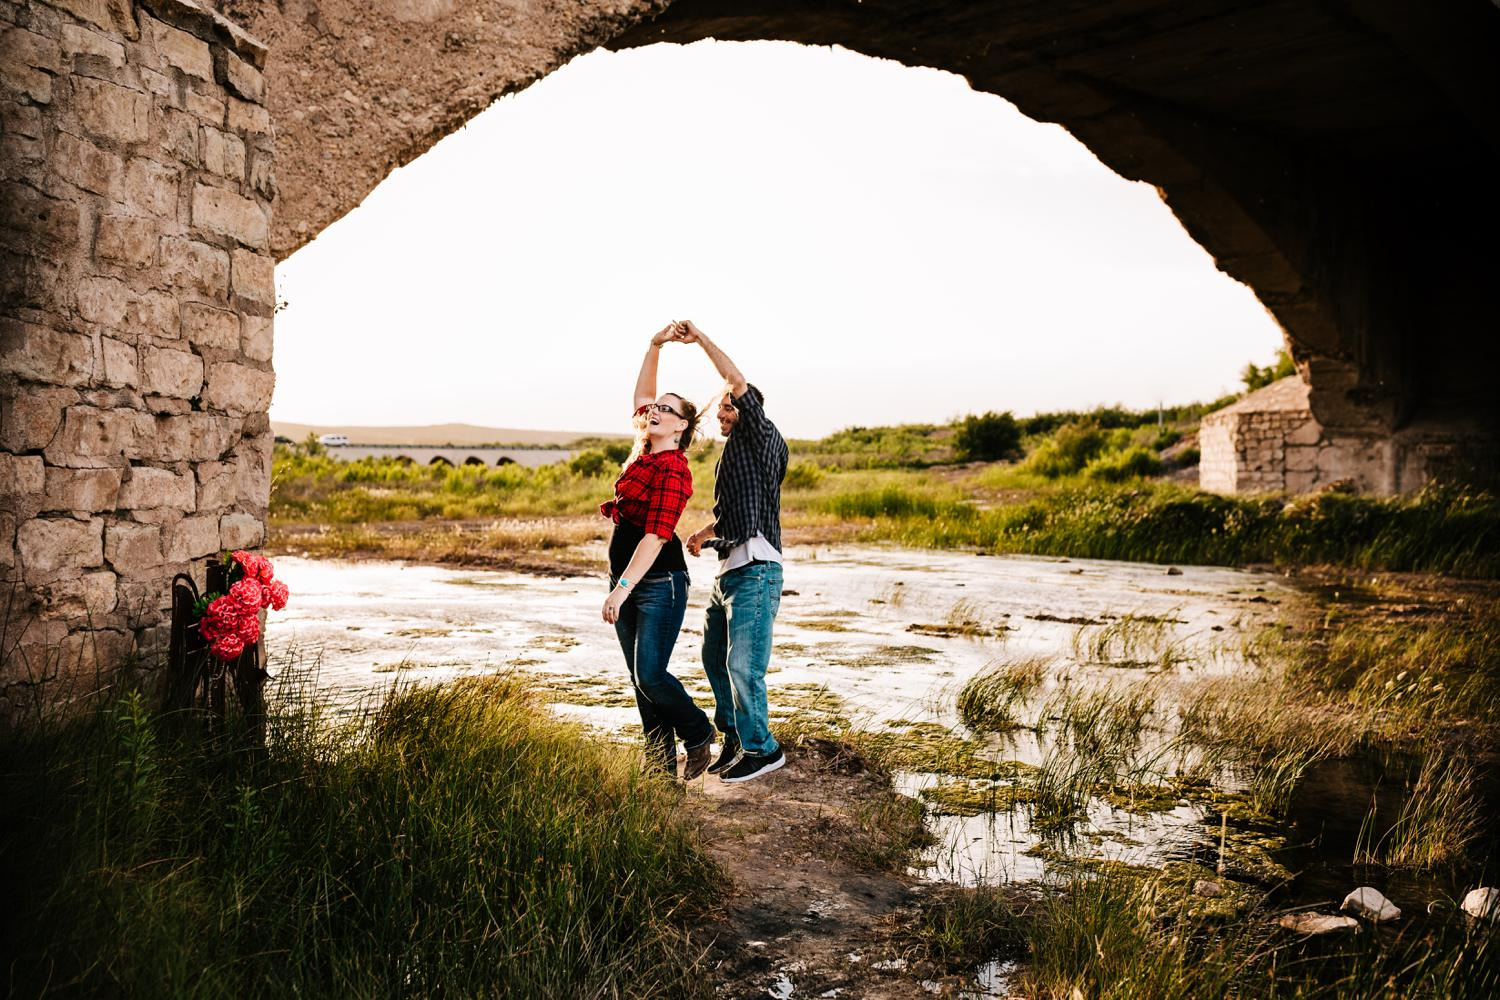 6. adventurous-new-mexico-fun-carlsbad-new-mexico-flumes-engagement-wedding-photographer-natural-andrea-van-orsouw-photography1.jpg